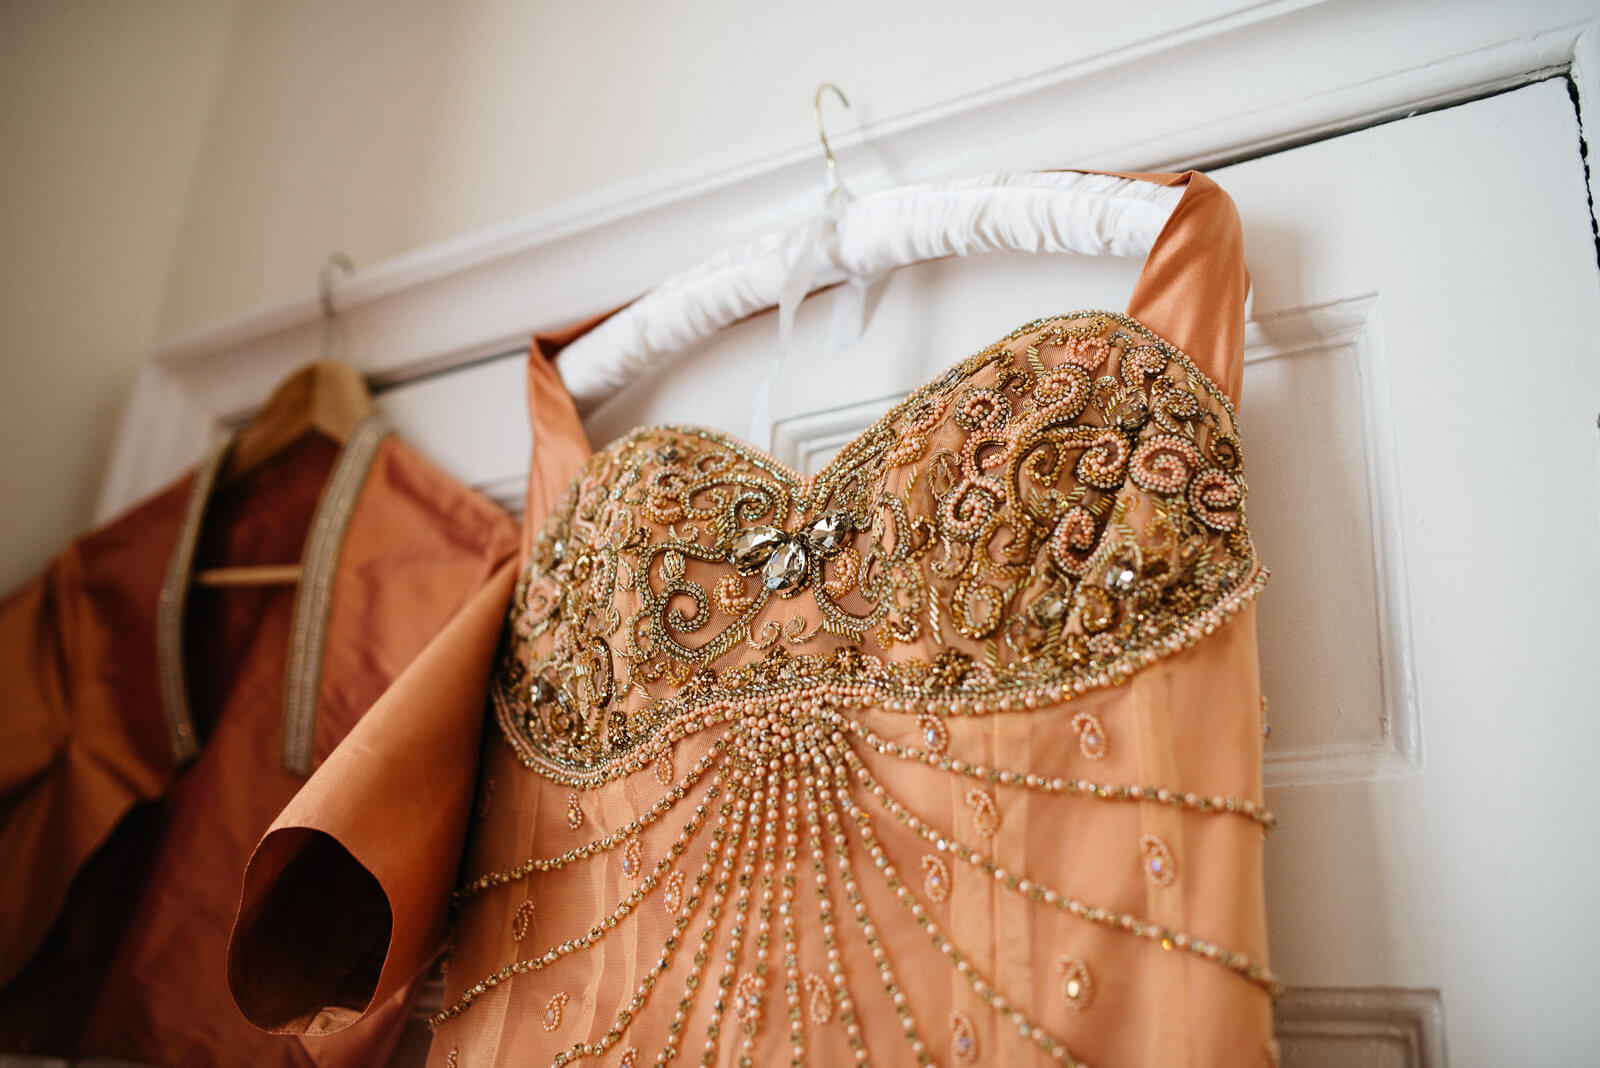 Gold embellished wedding dress hanging on fabric covered hanger